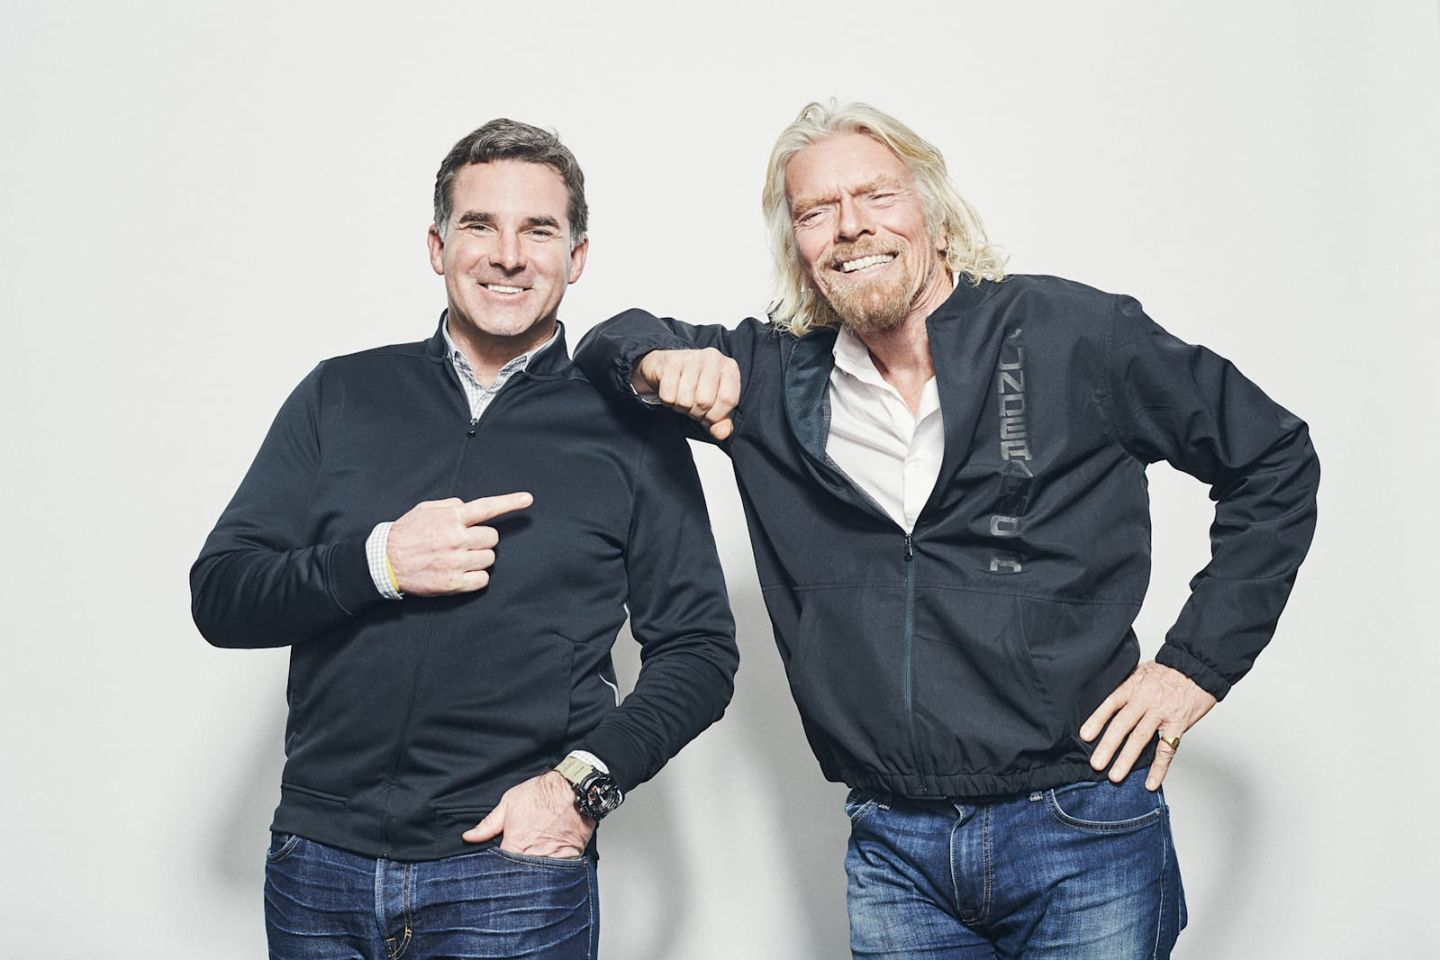 Richard Branson and Kevin Plank